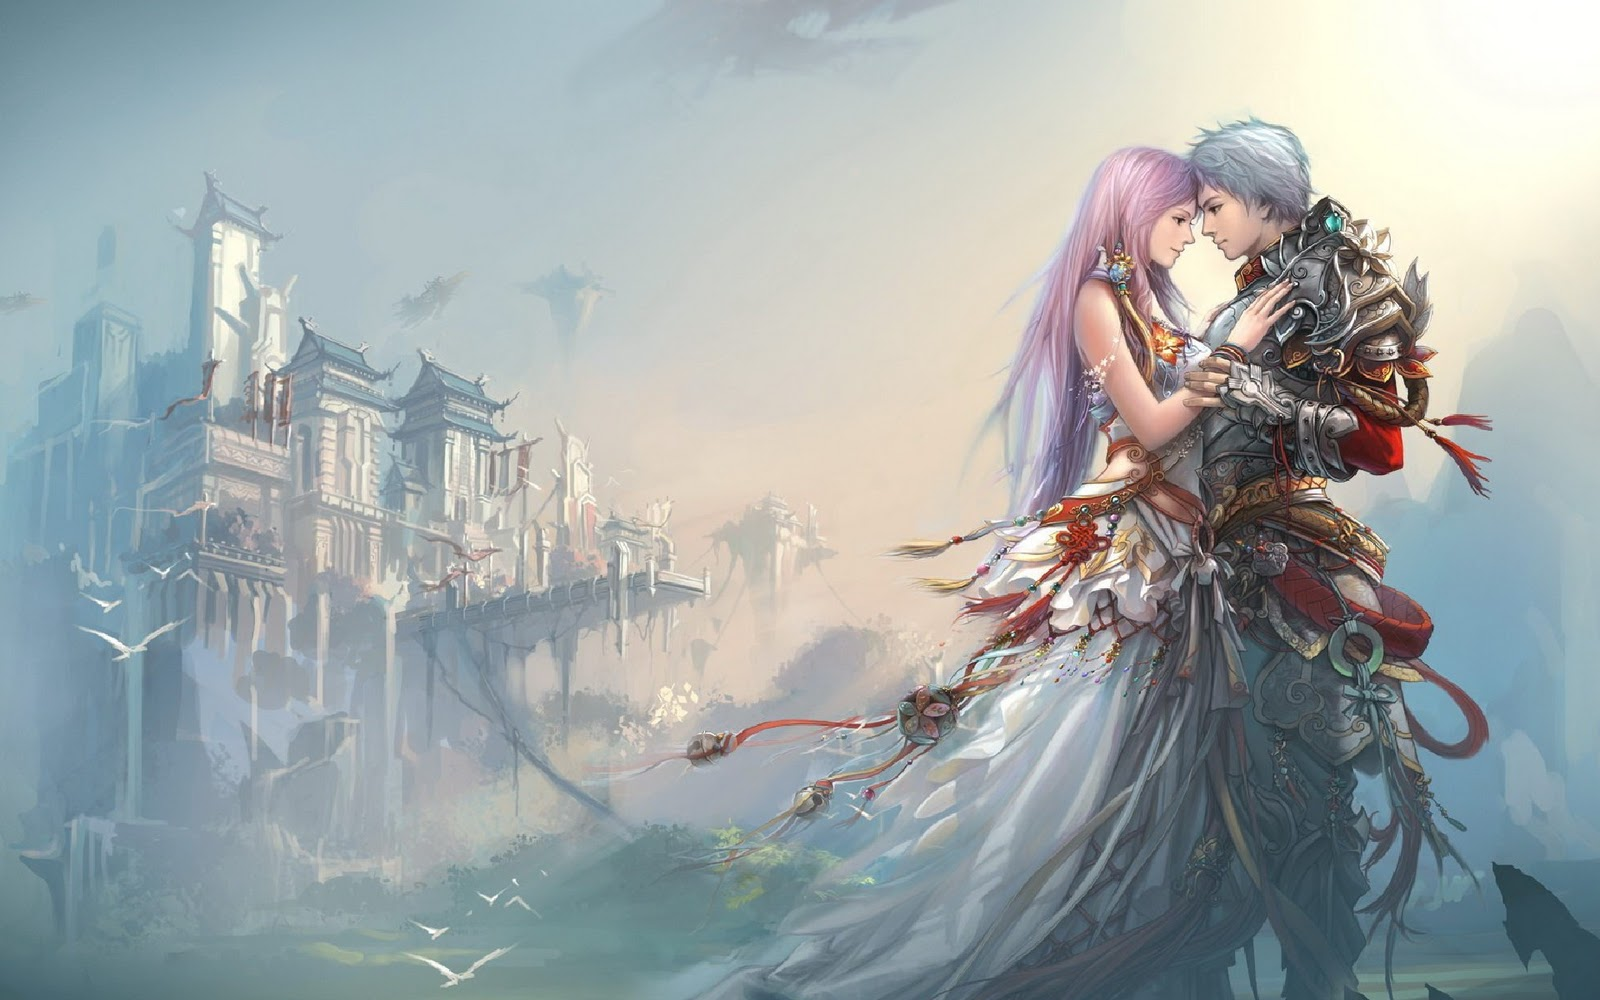 Desktop Wallpaper Romantic Love : Romance Love Anime 11 Desktop Background - Hdlovewall.com